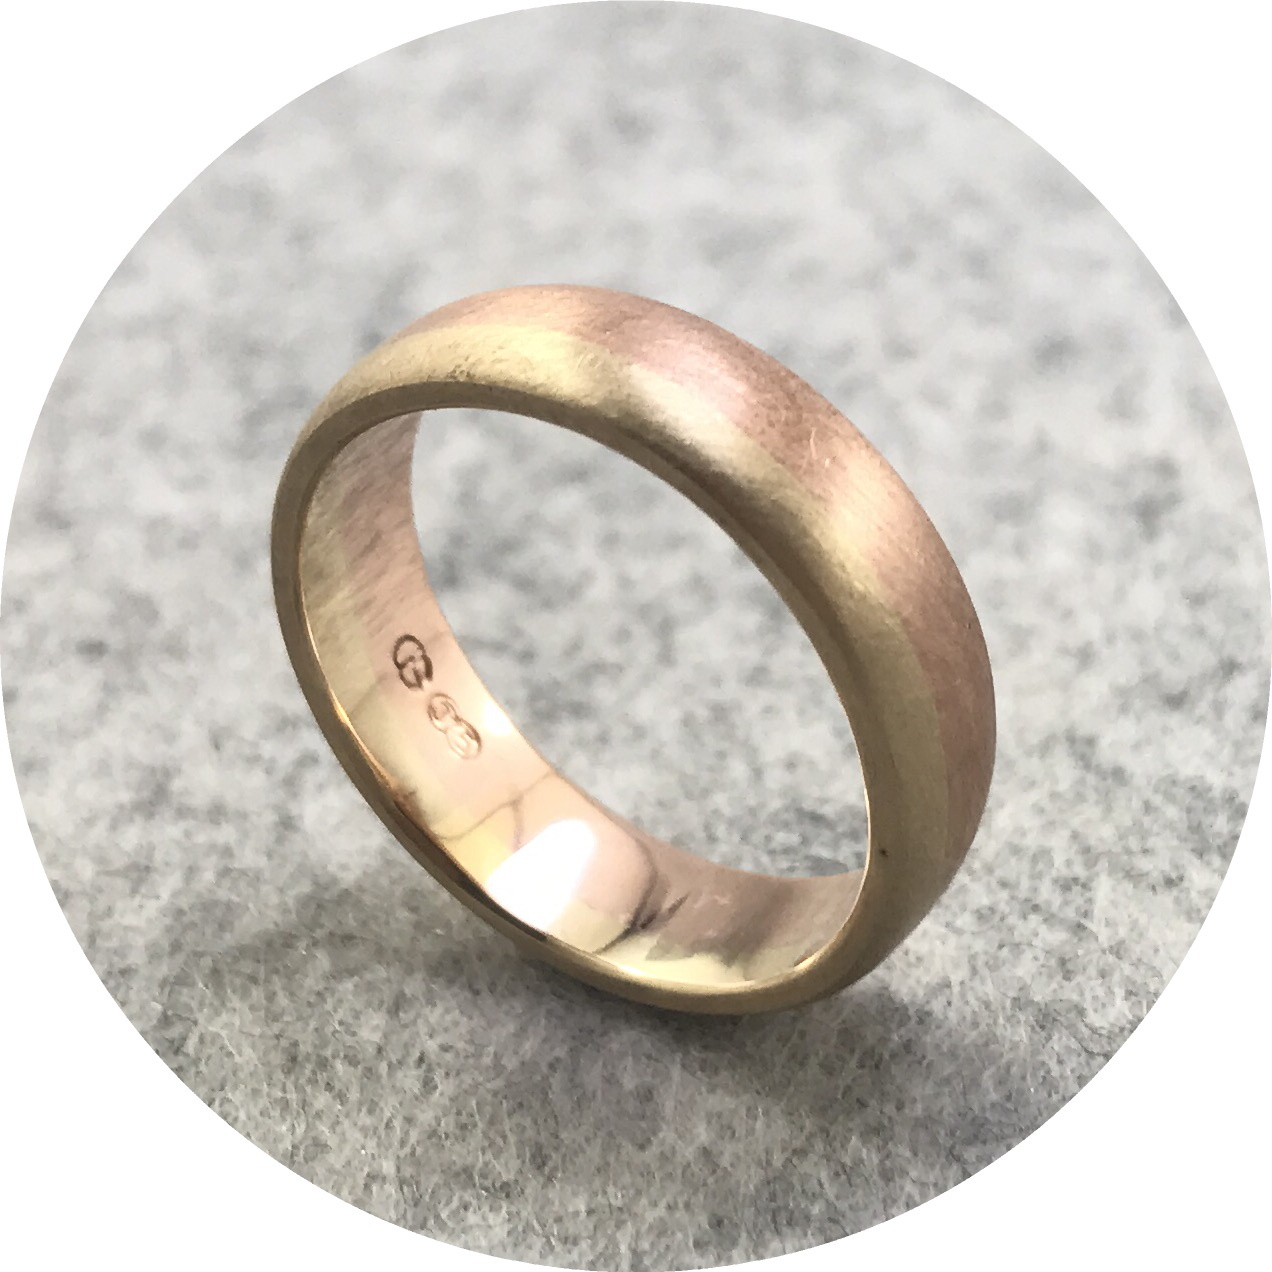 Aimee Sutanto - 'Along' Ring in 9ct Yellow and Rose Gold 5.2mm Wide